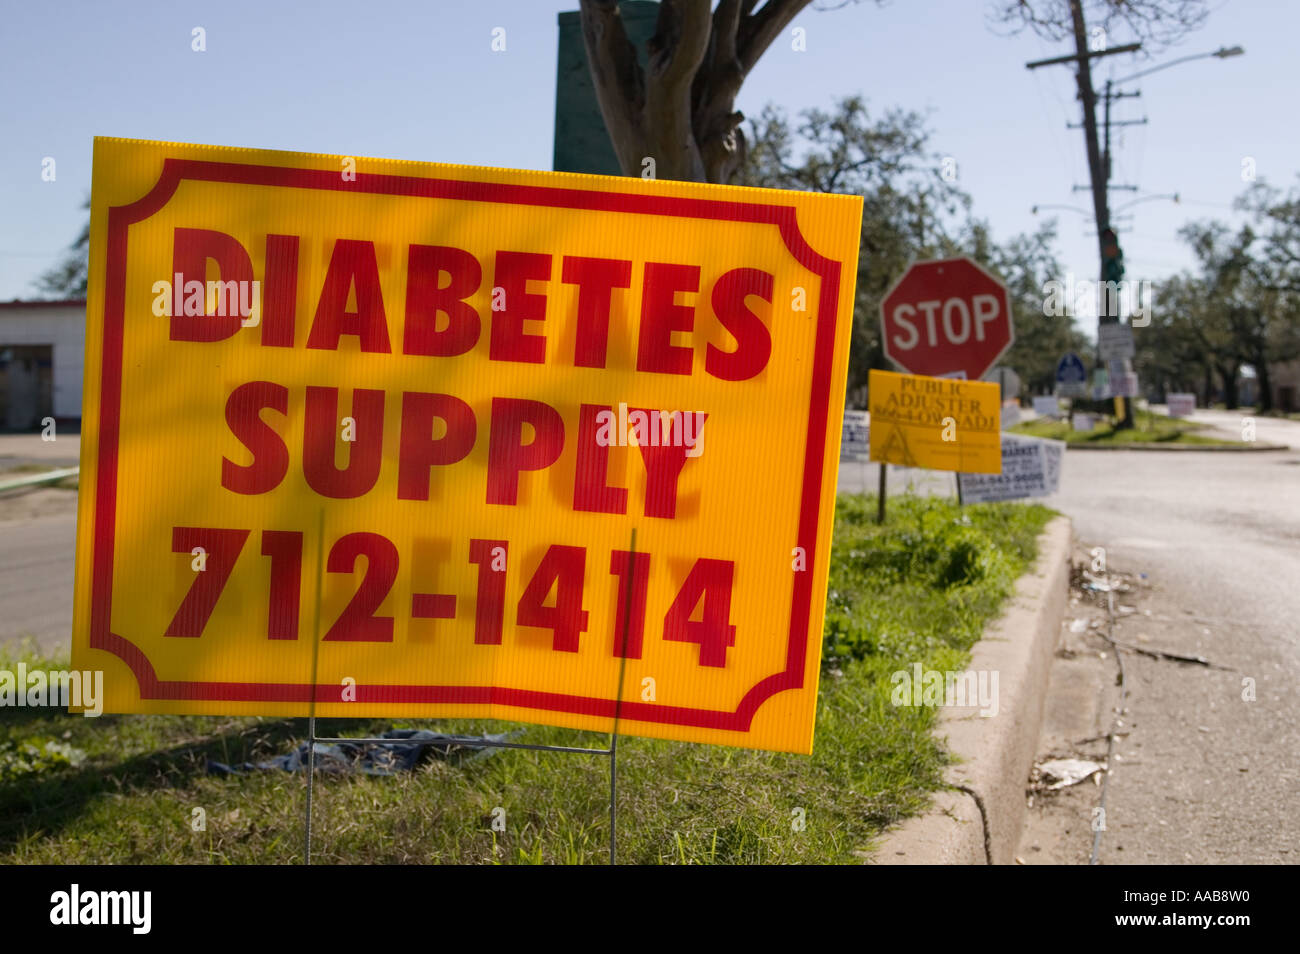 Advertising placards promoting diabetes supplies and services in the Bywater neighborhood of New Orleans Louisana - Stock Image